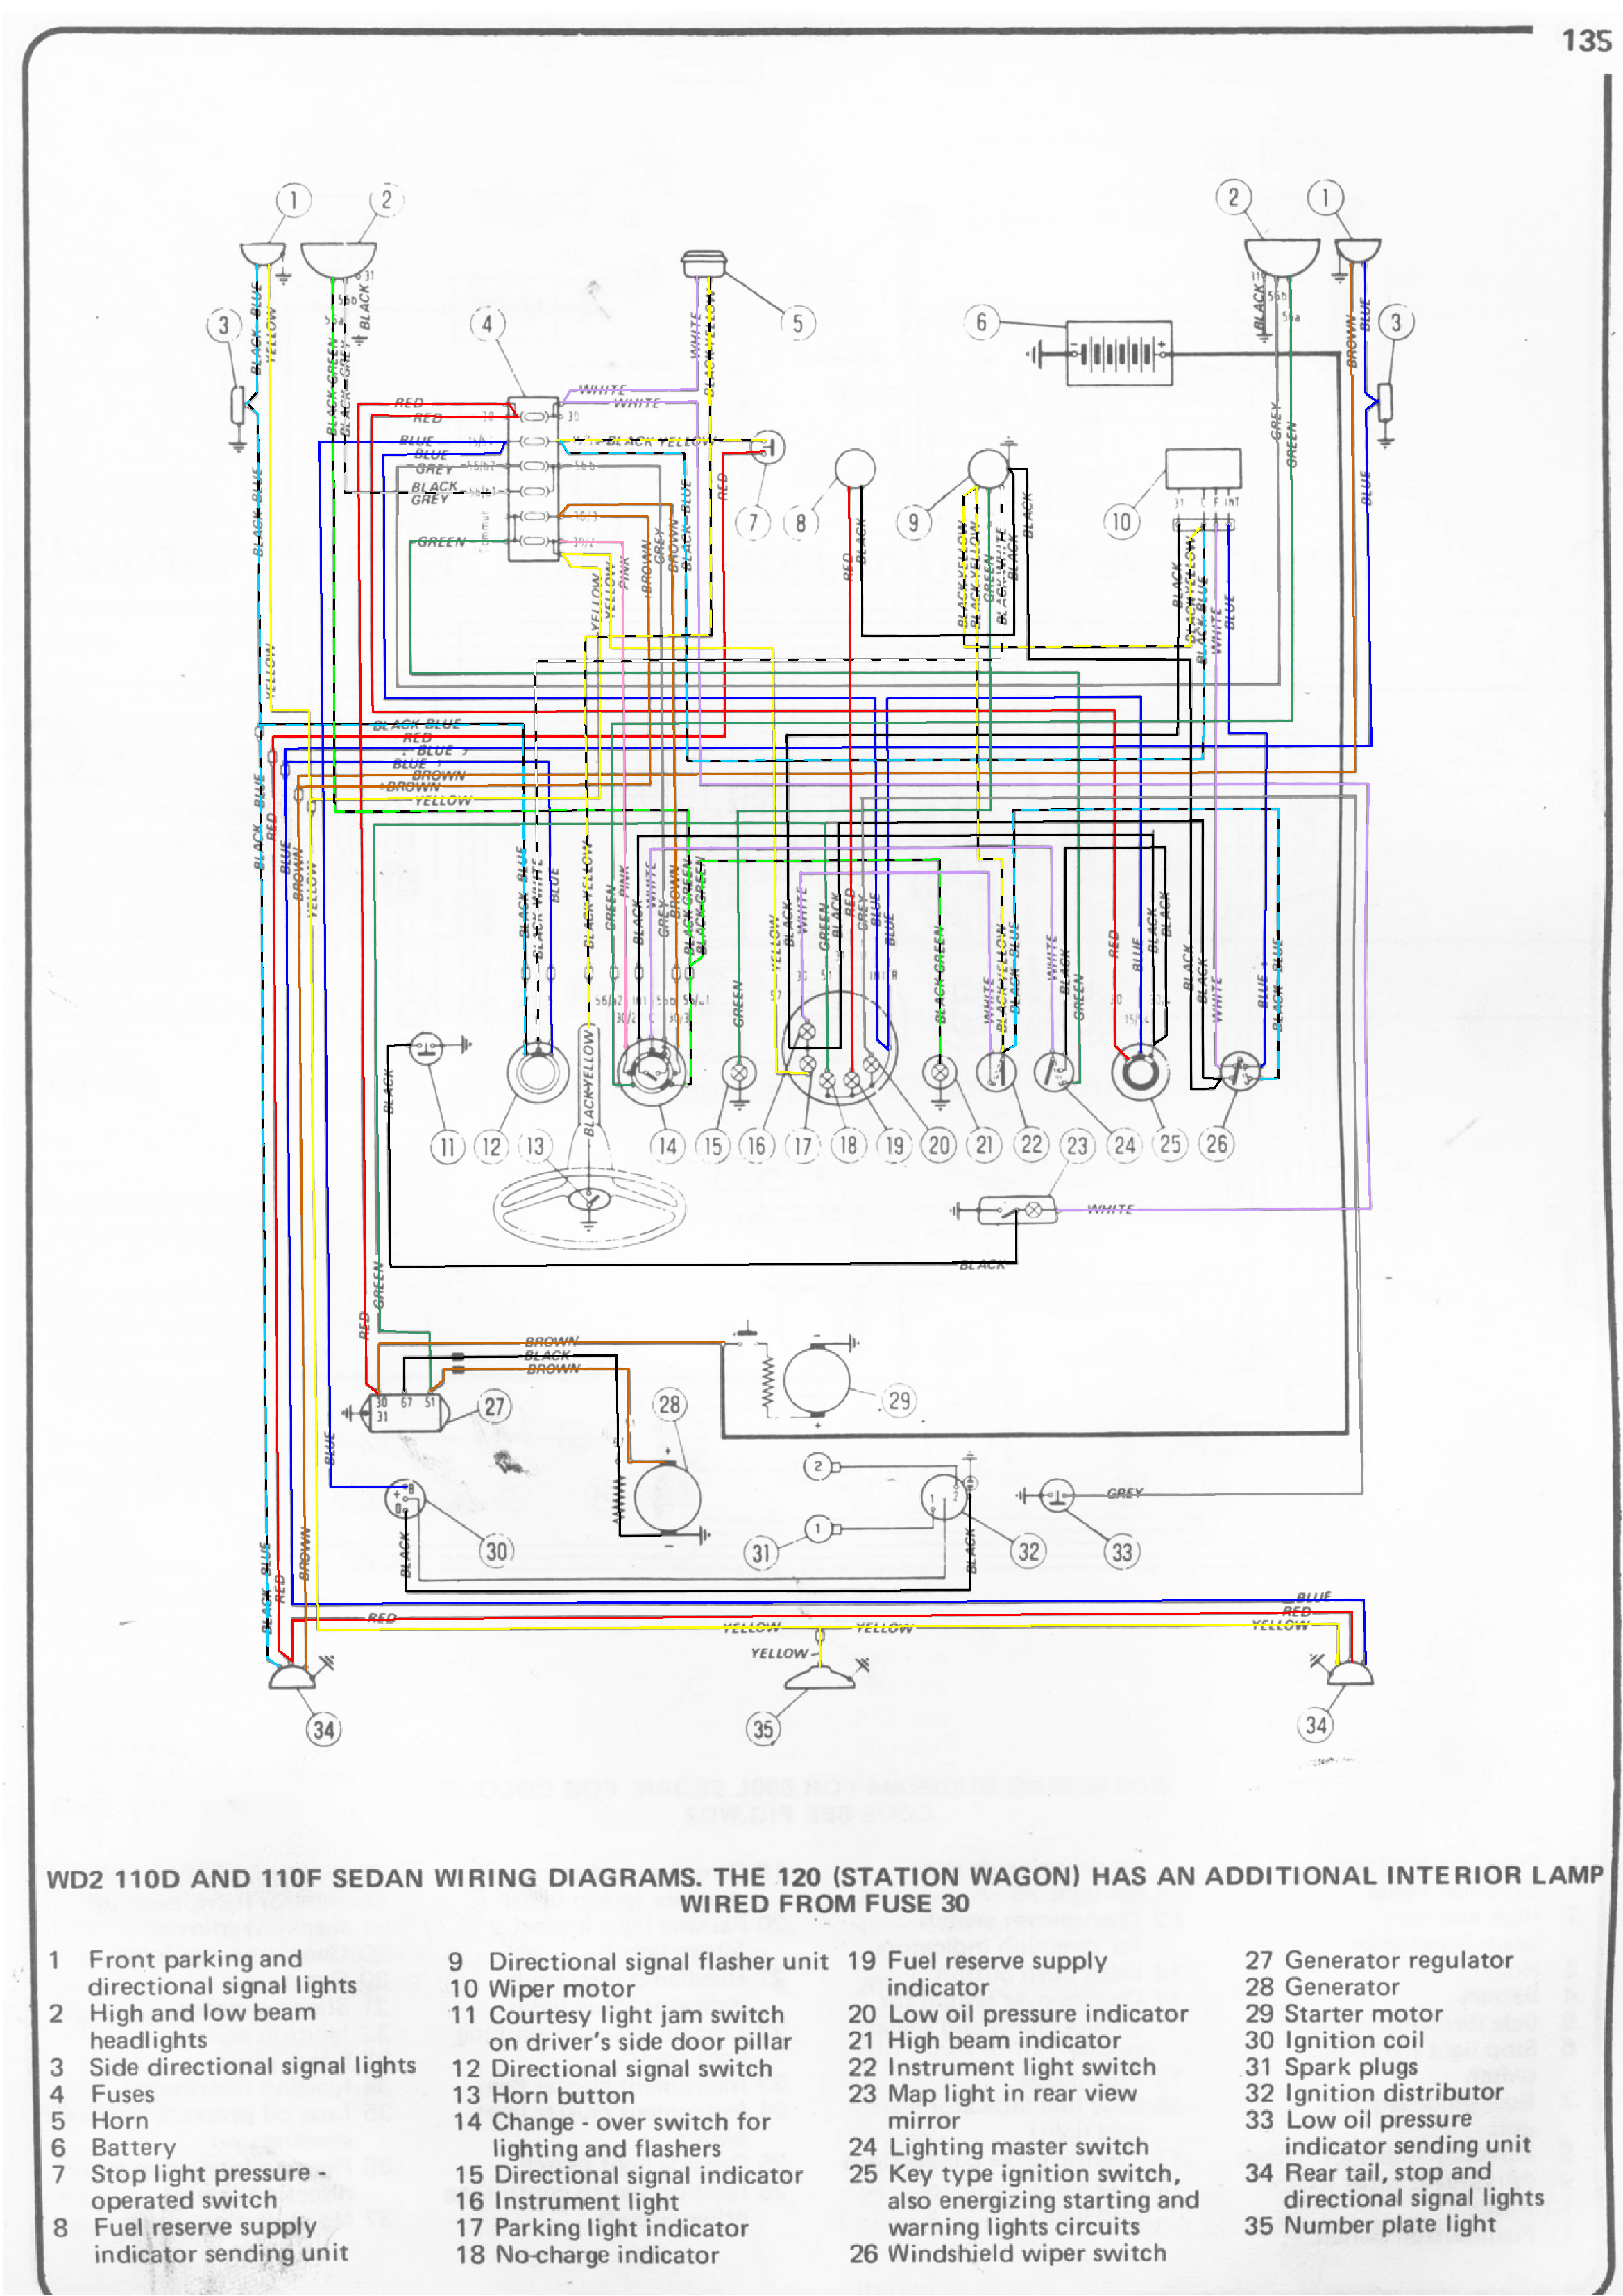 fiat panda wiring diagram download fiat panda engine diagram #3